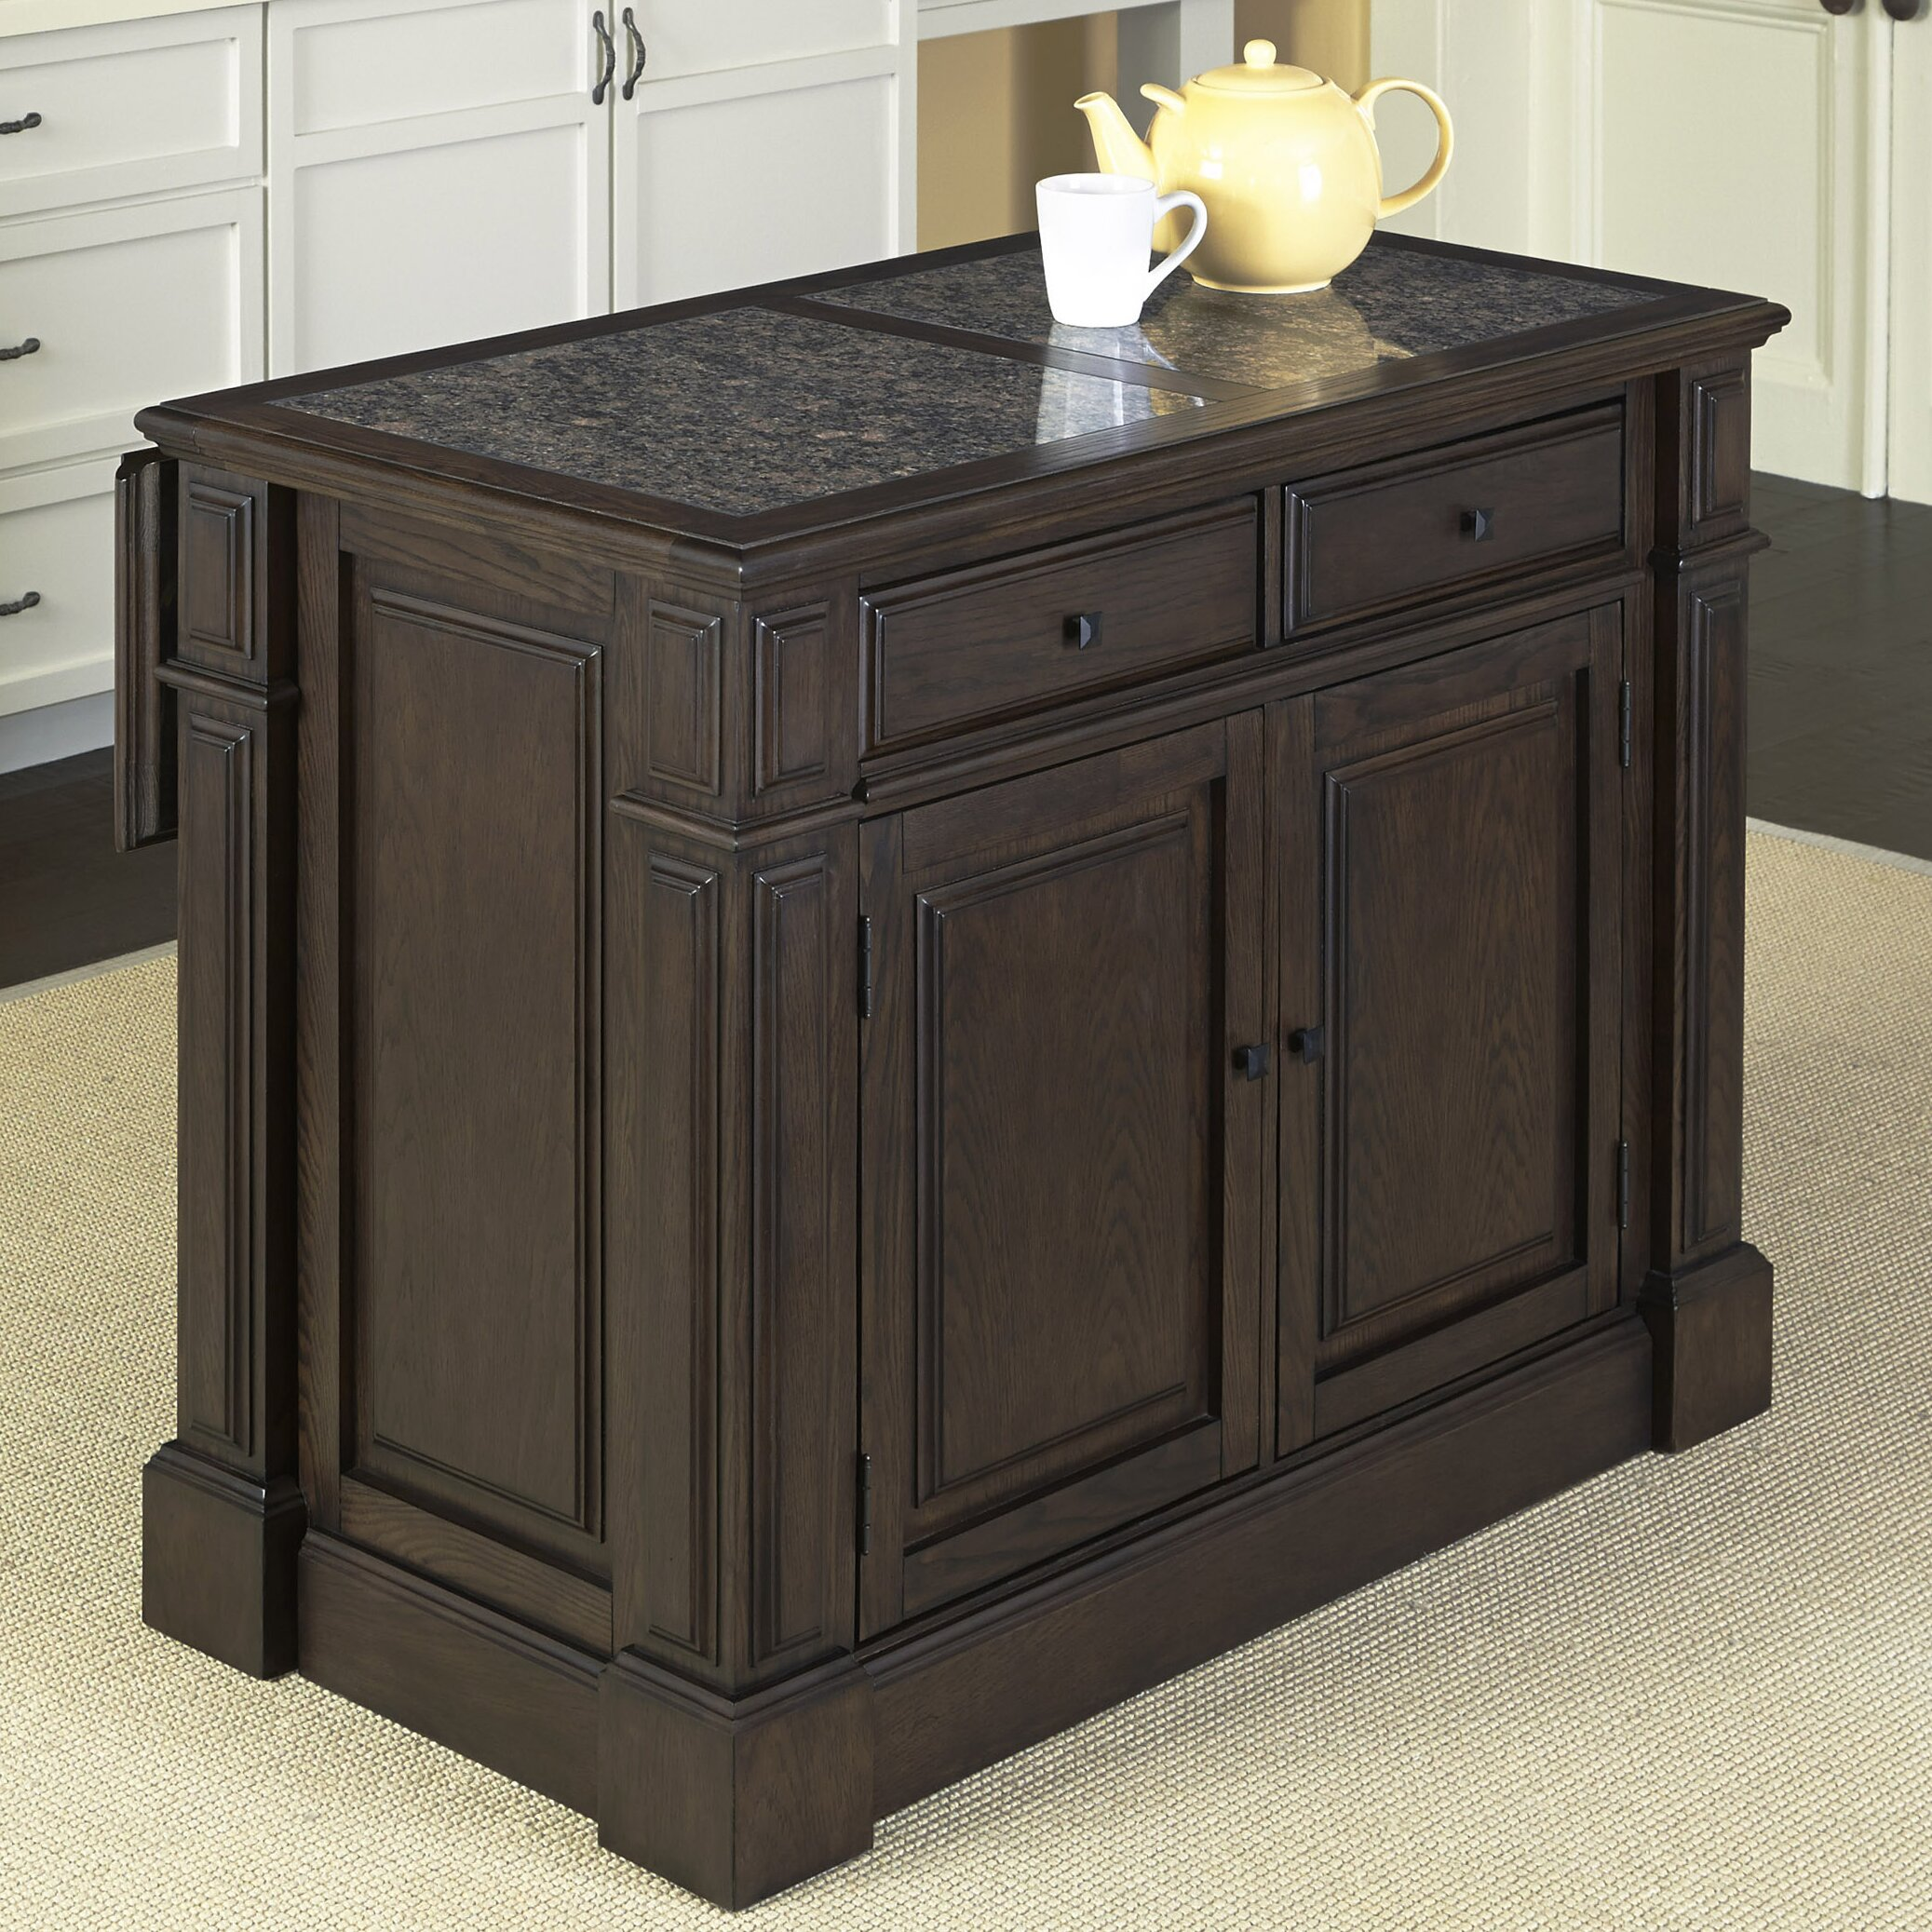 Kitchen Island With Granite Top: Home Styles Prairie Home Kitchen Island With Granite Top